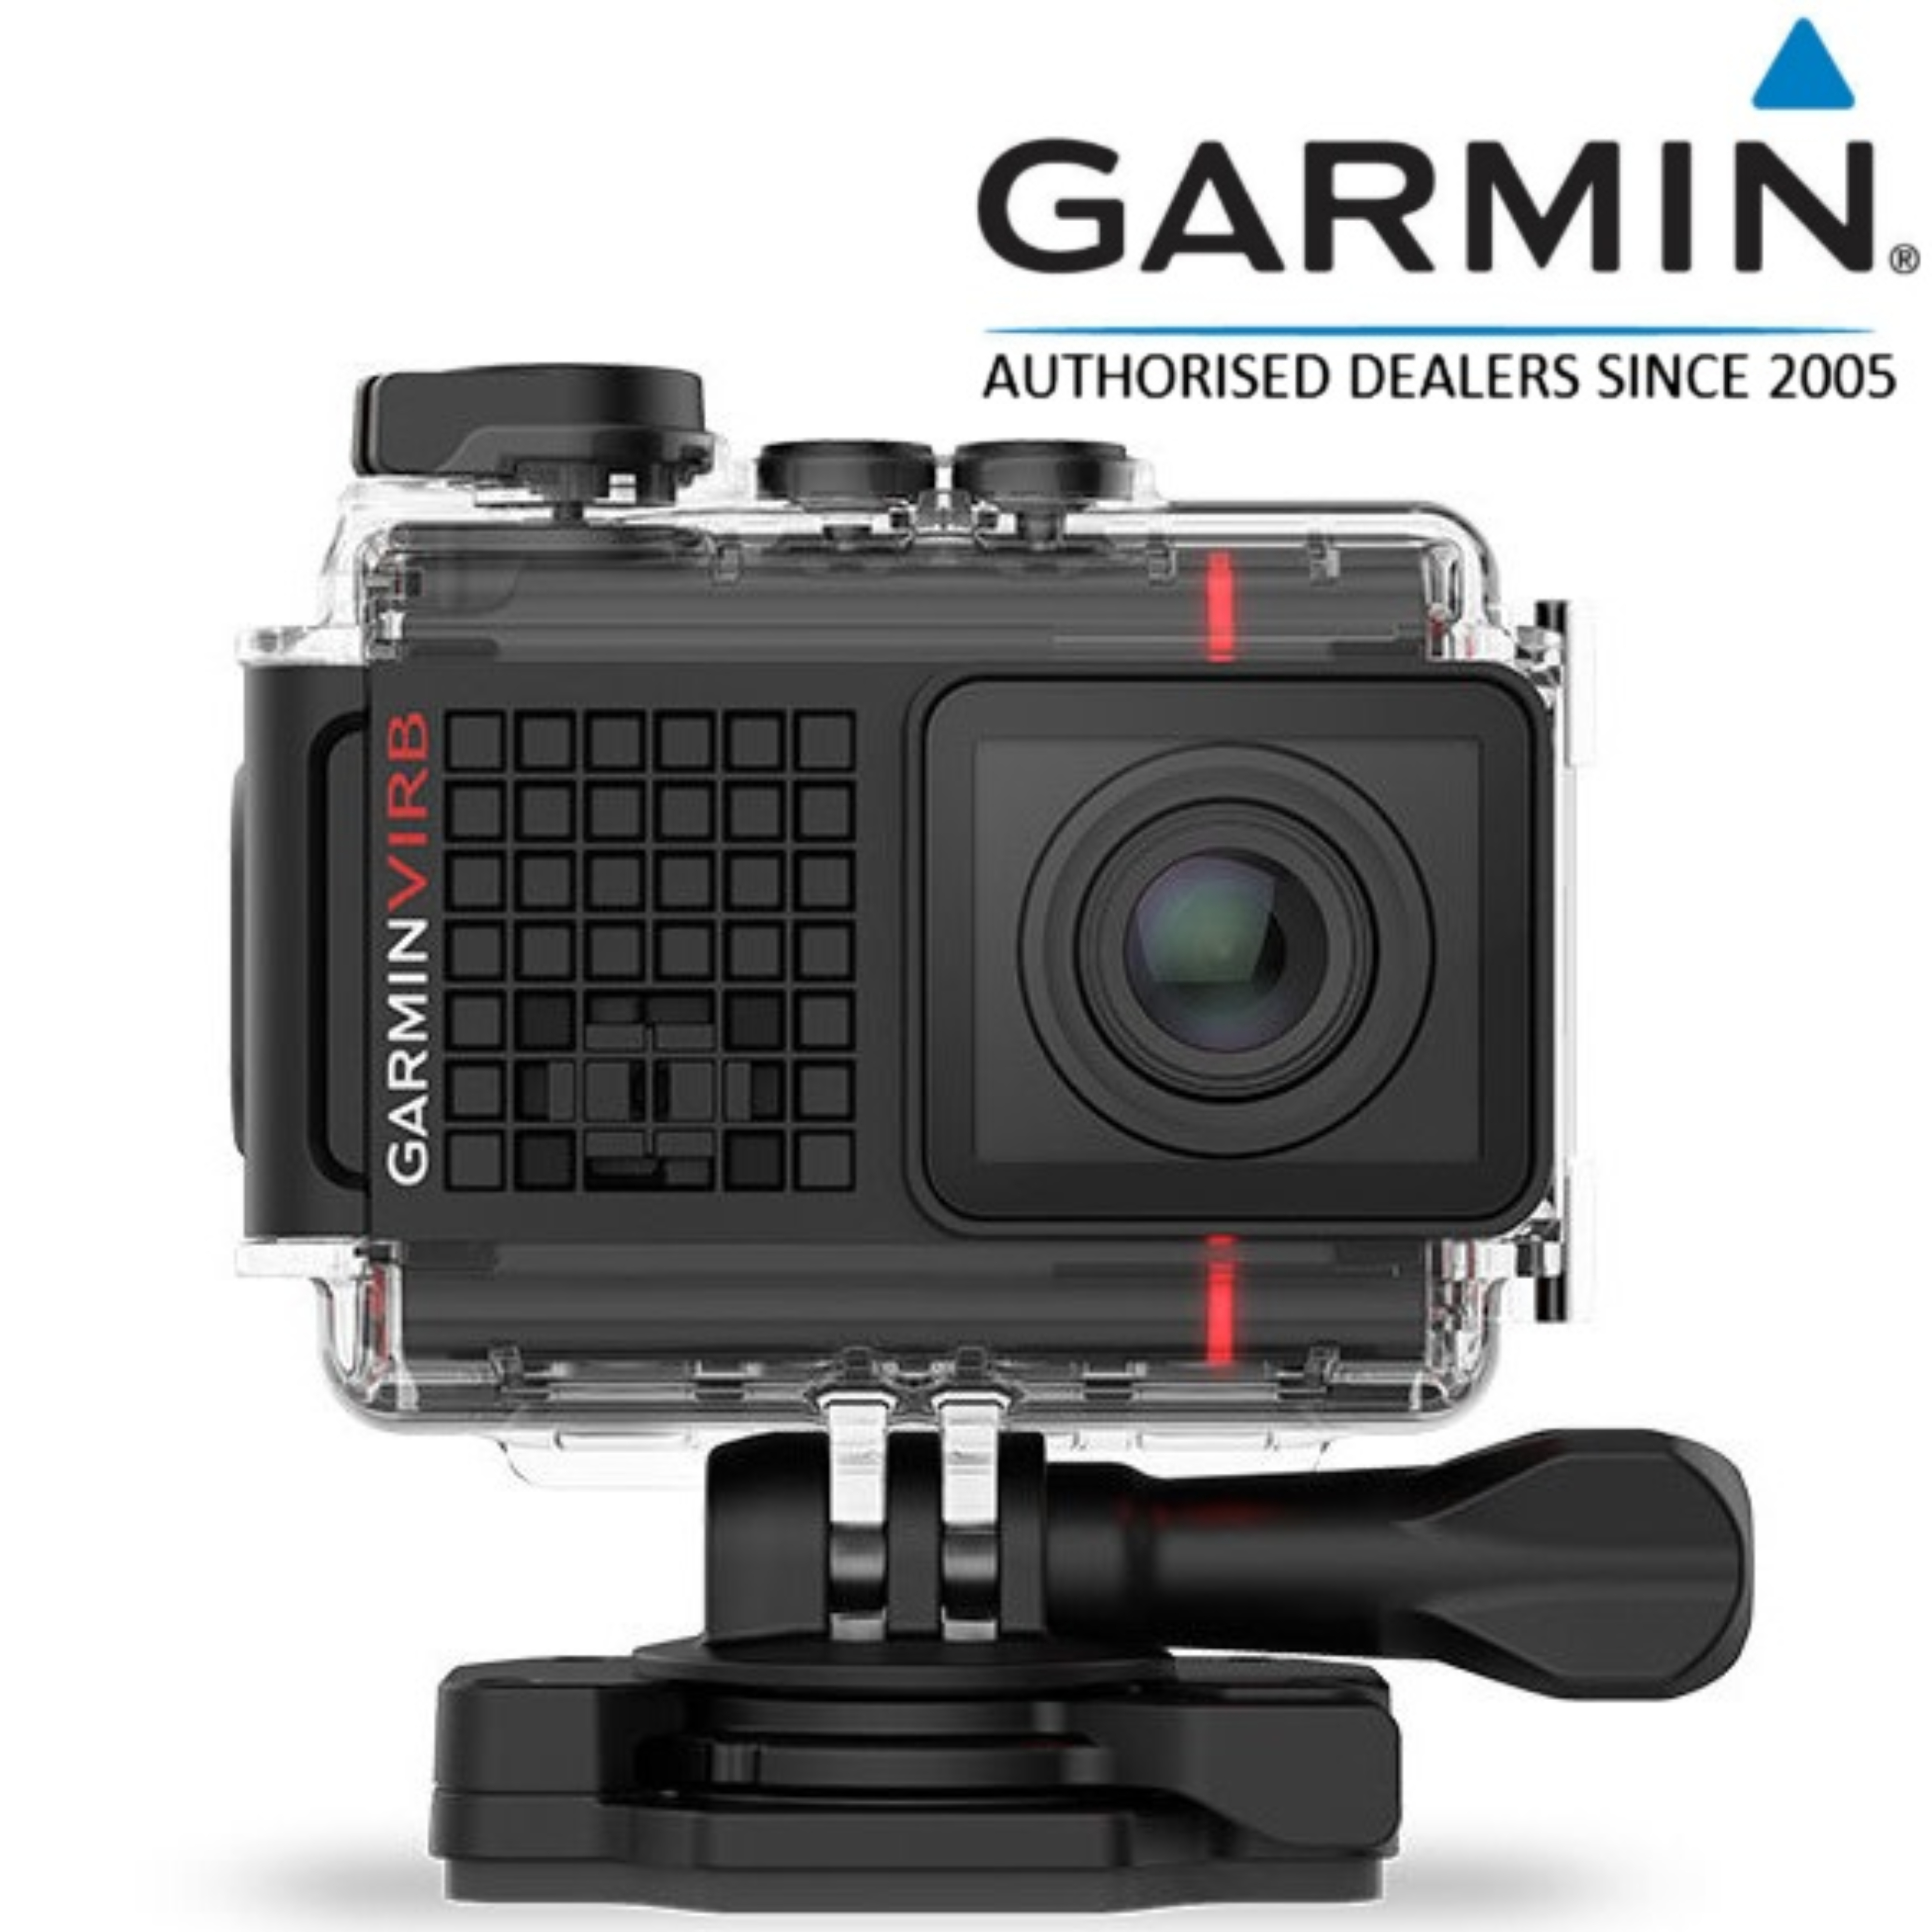 Garmin Protective Case/Cover   Waterproof- Upto 40 Meters   For VIRB Ultra 30 Action Camera